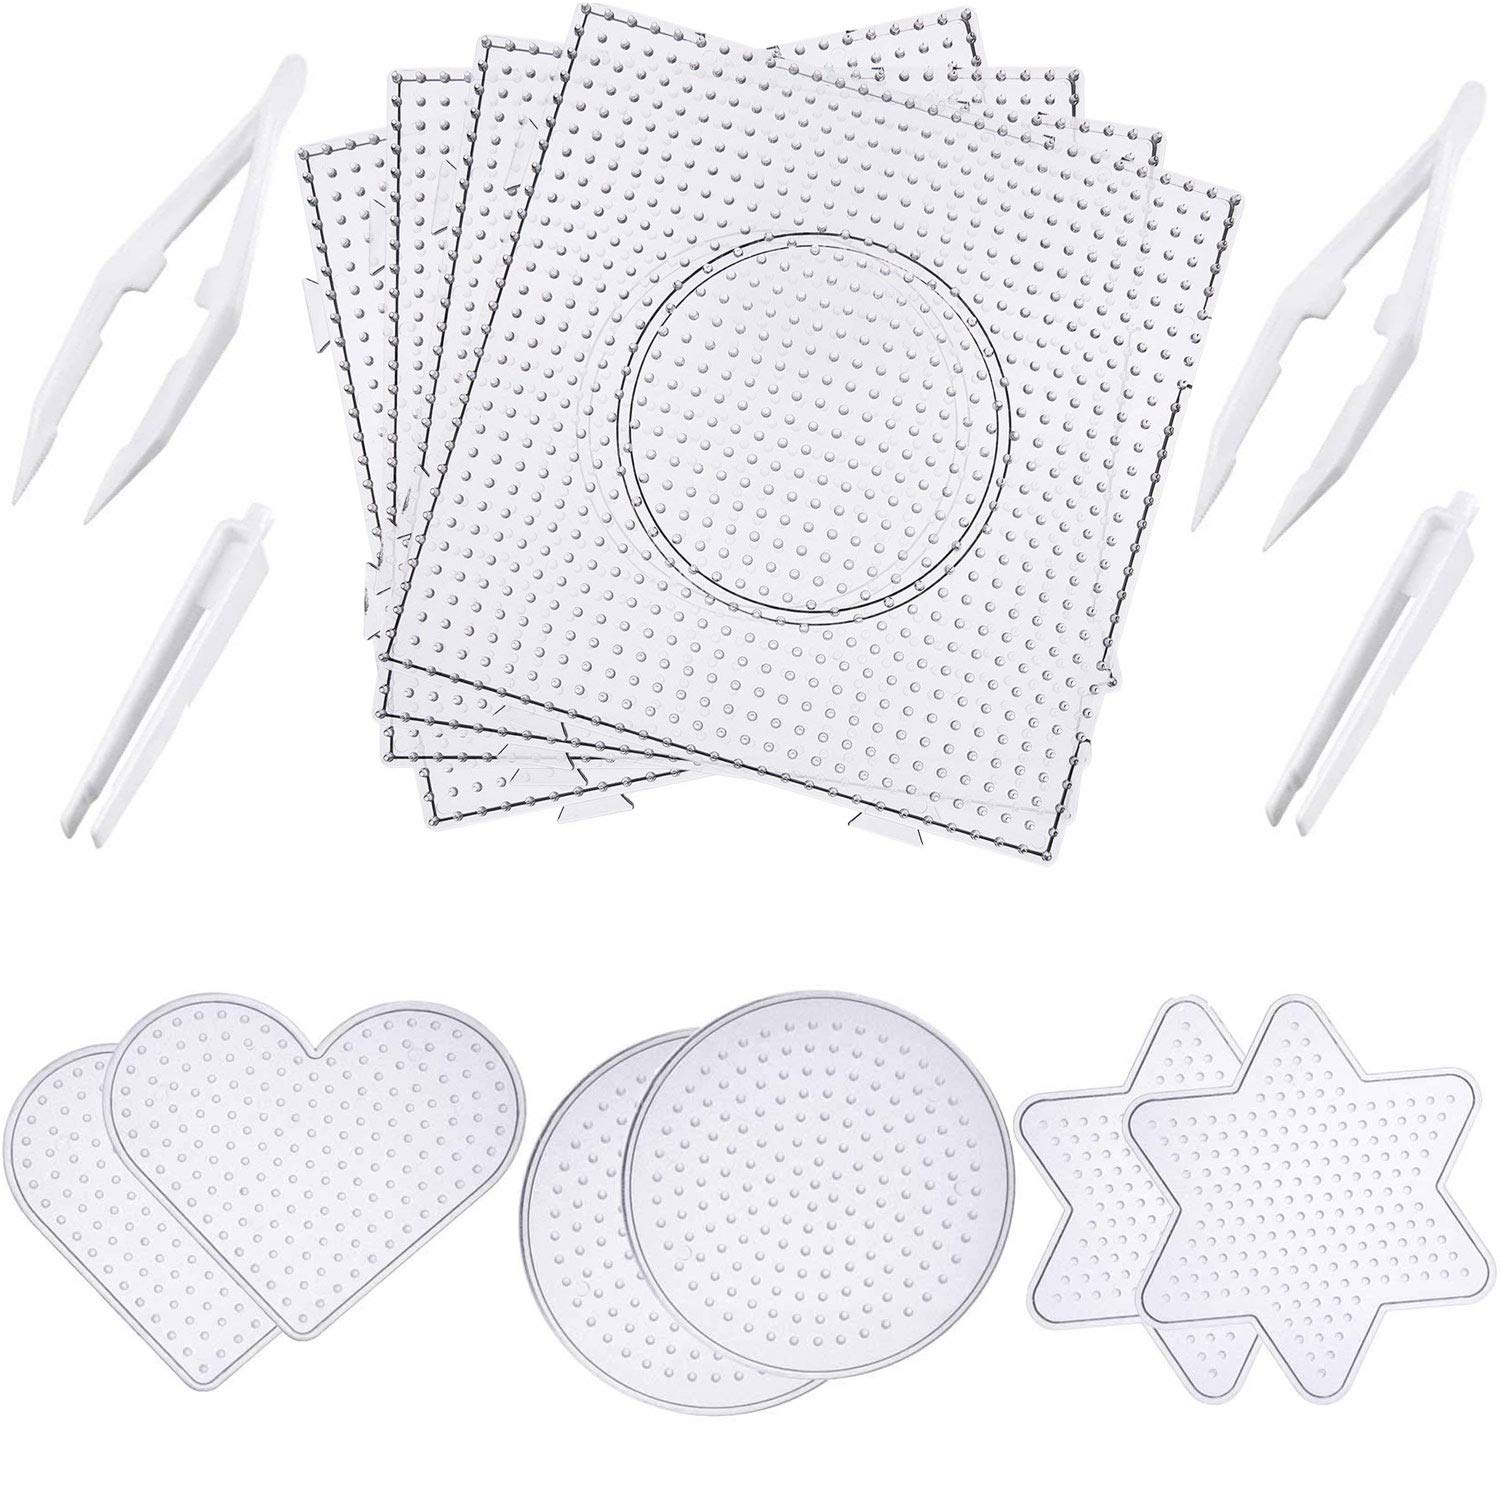 Canomo Fuse Beads Boards Clear Plastic Pegboards Fuse Beads Pegboards with 4 Pieces Tweezers for 5 mm Beads, 10 Pieces (4 Shapes) by canomo